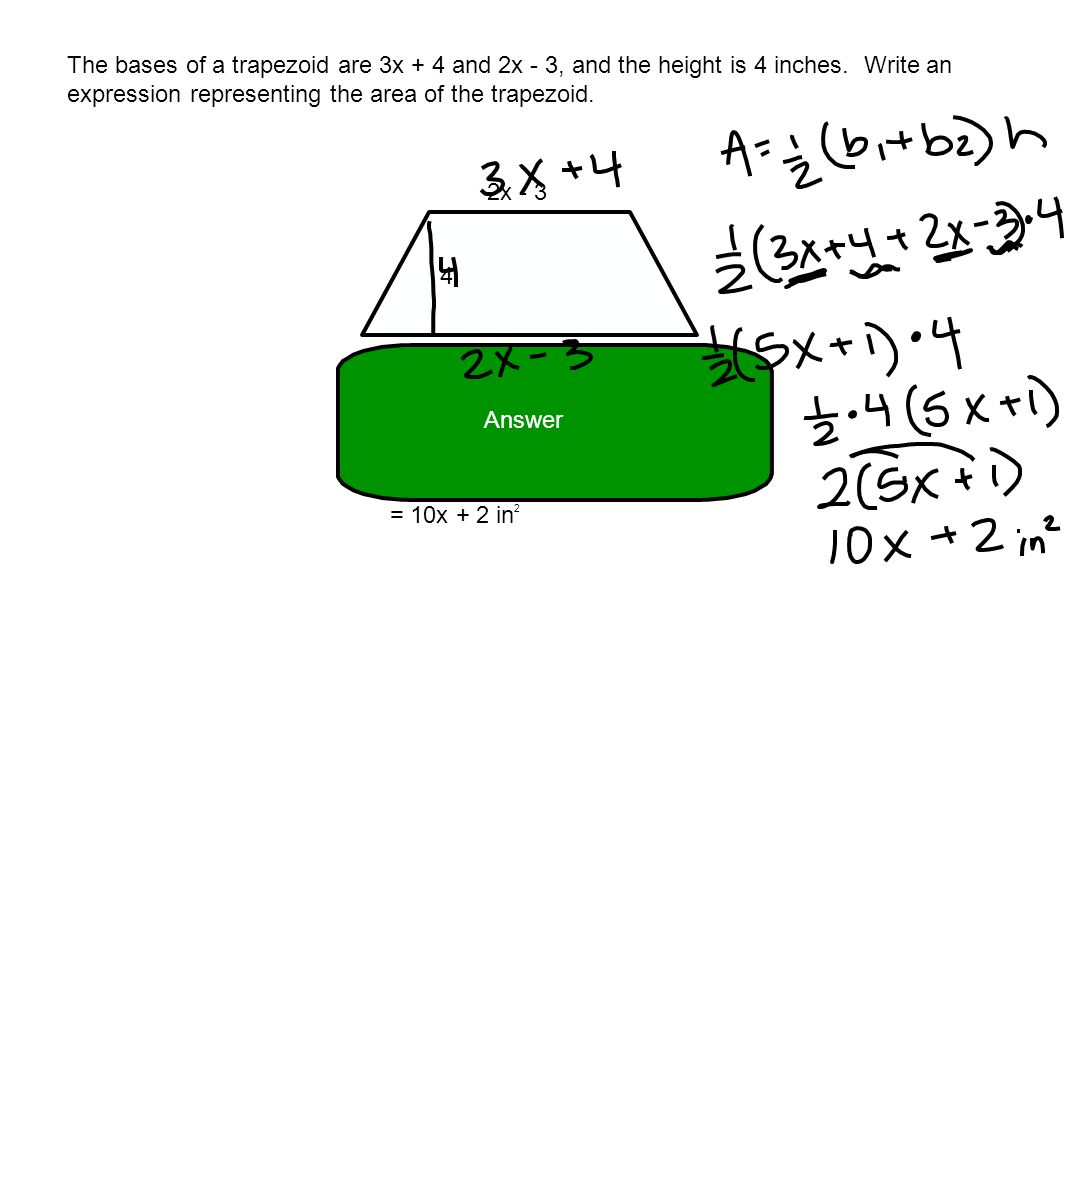 The Bases Of A Trapezoid Are 3x + 4 And 2x 3, And The Geometry